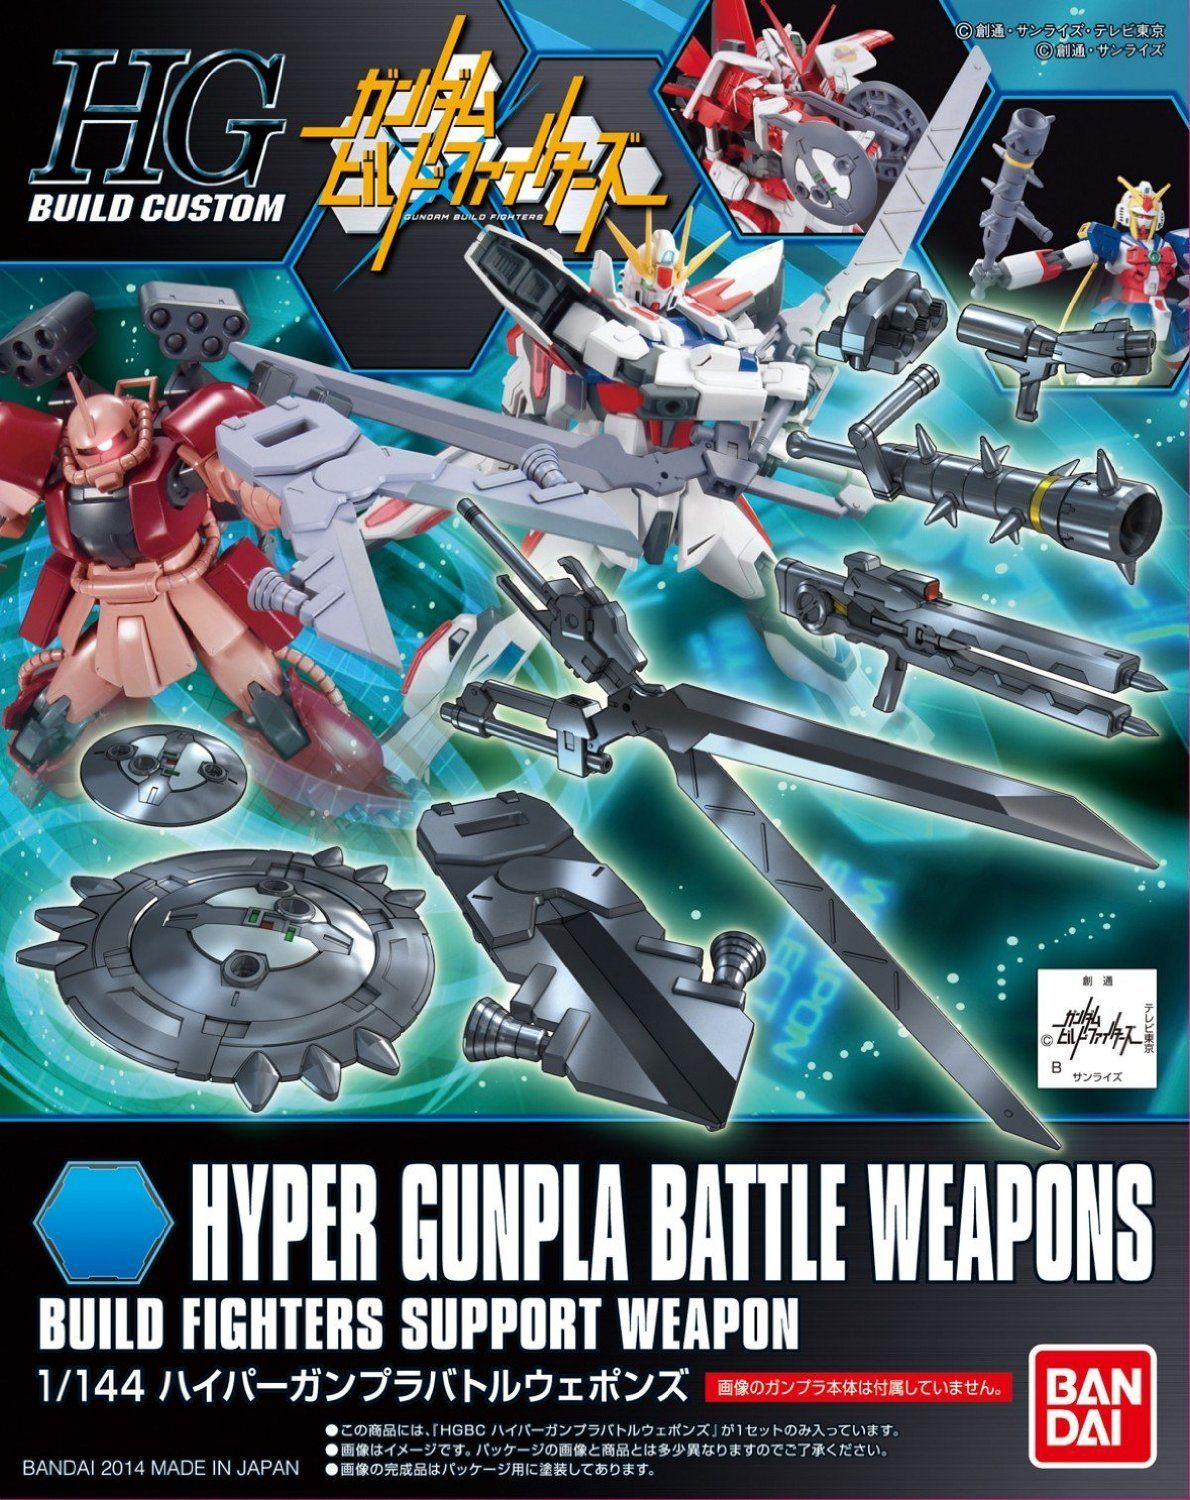 HGBC 1/144 Hyper Gunpla Battle Weapons